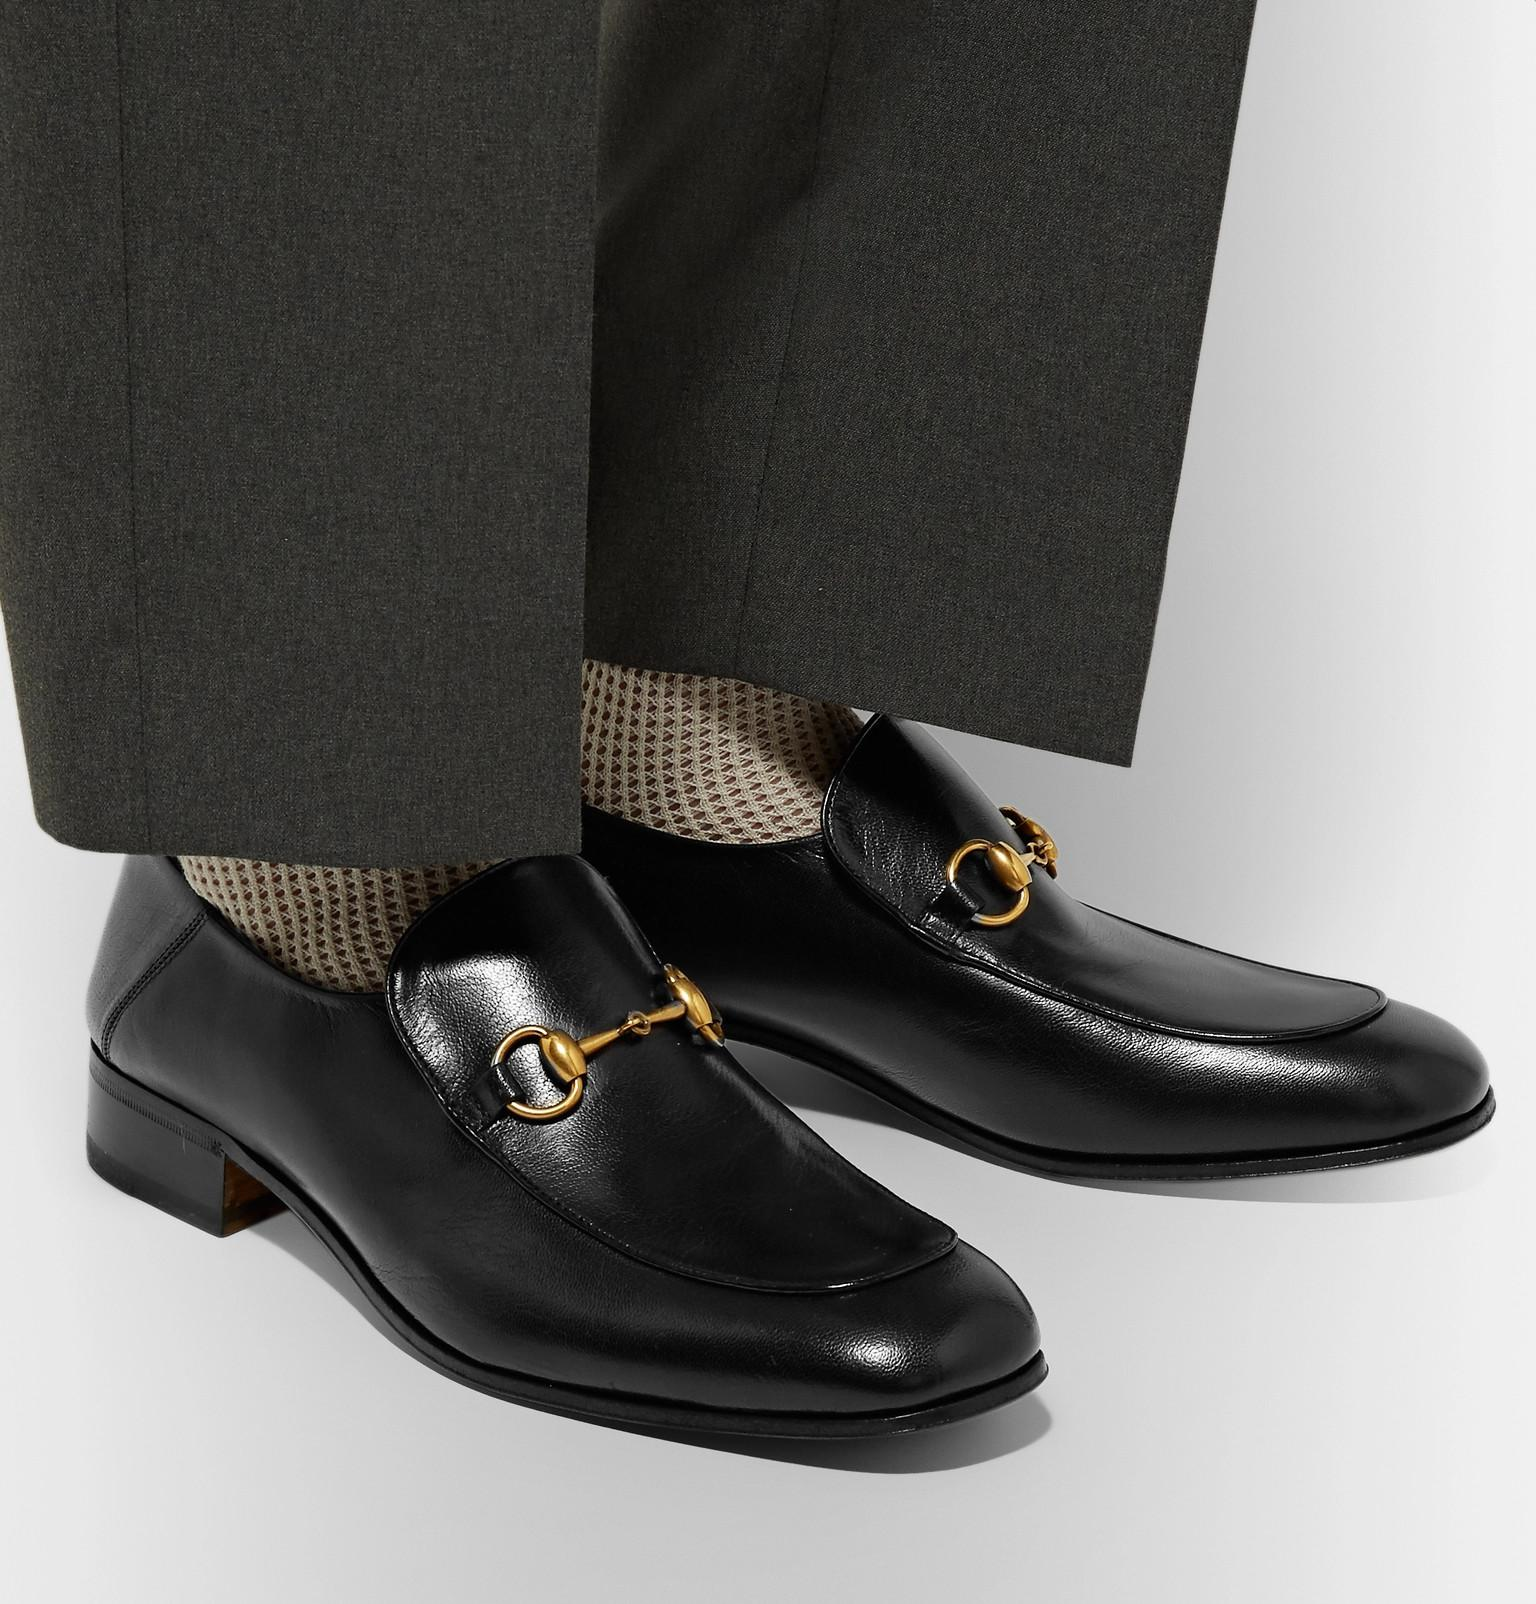 20d32aa69fa Gucci - Black Mister Horsebit Collapsible-heel Leather Loafers for Men -  Lyst. View fullscreen